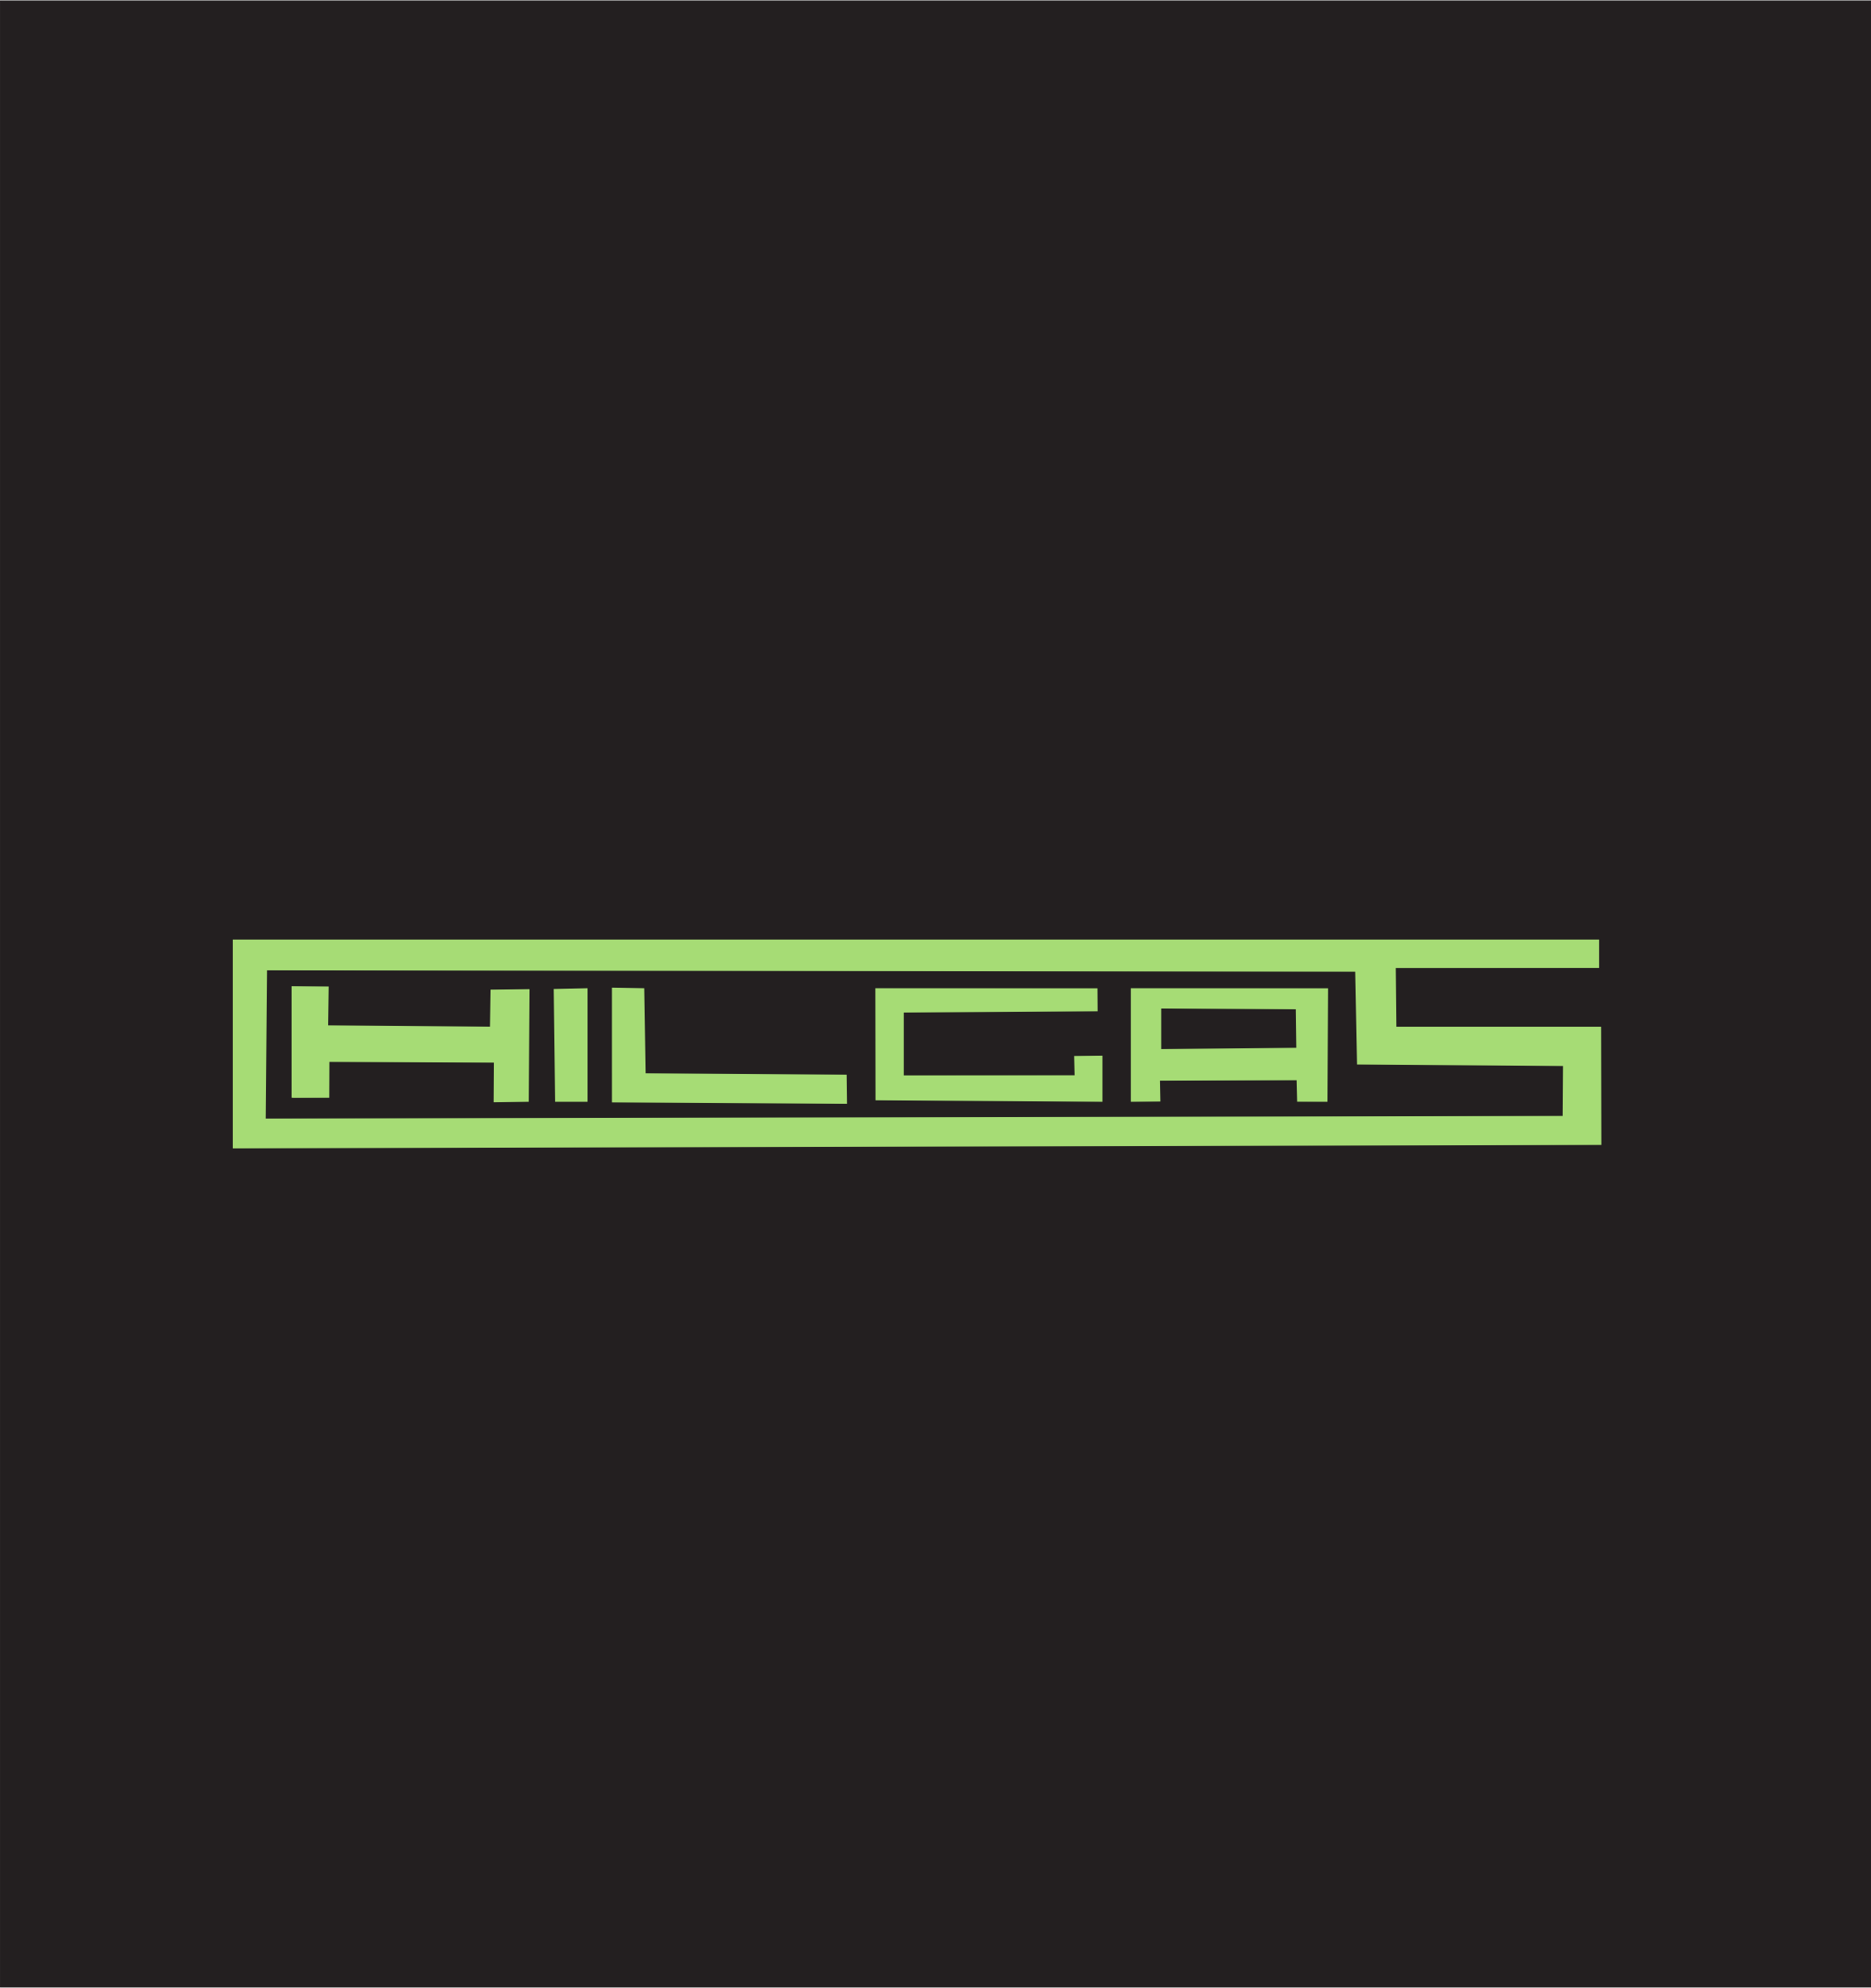 HILGAS.svg by HILGAS